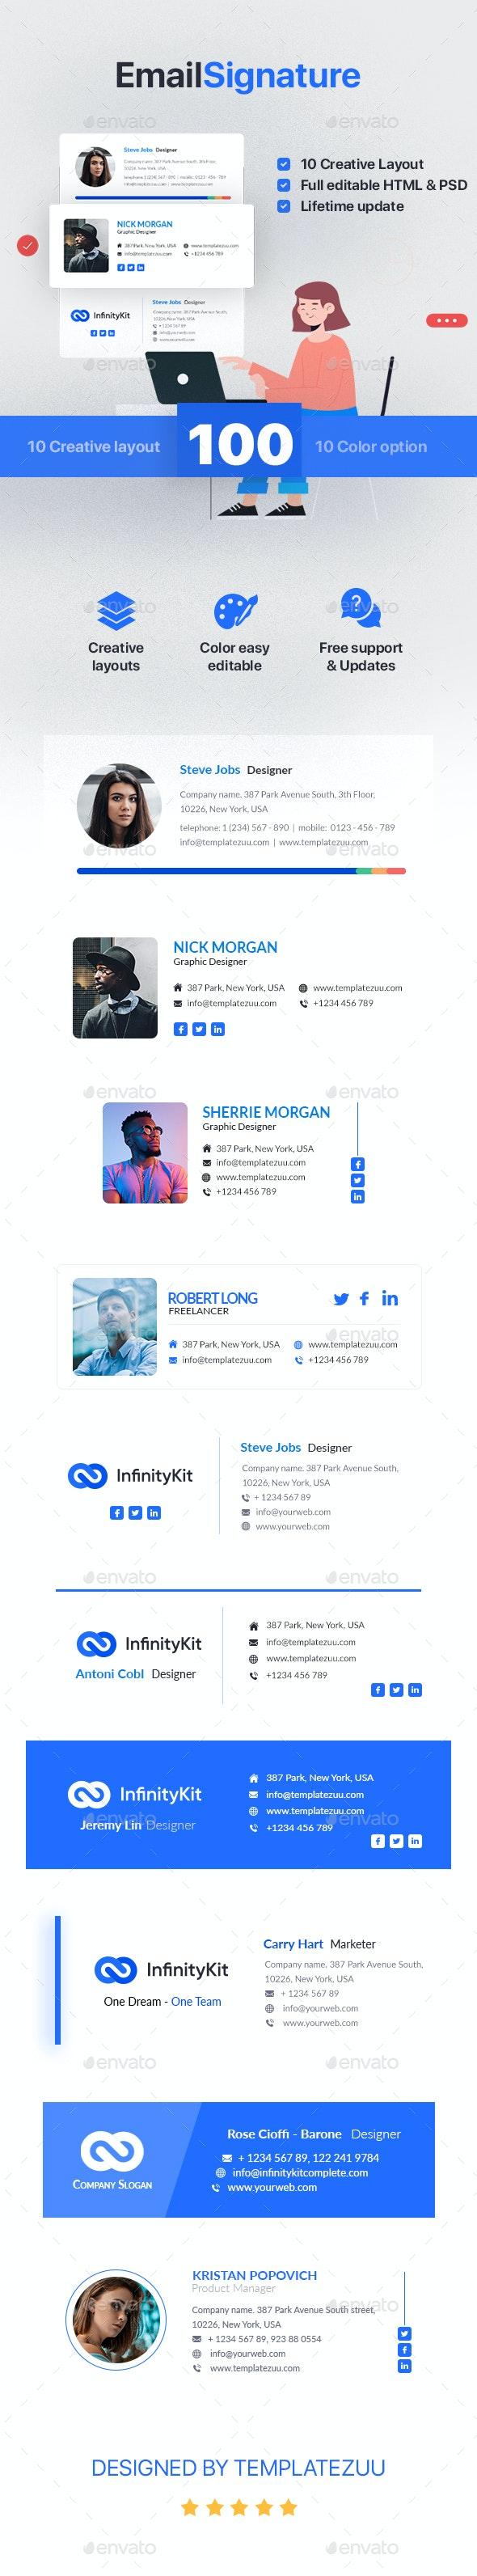 InfinityKit Email Signature - Miscellaneous Social Media